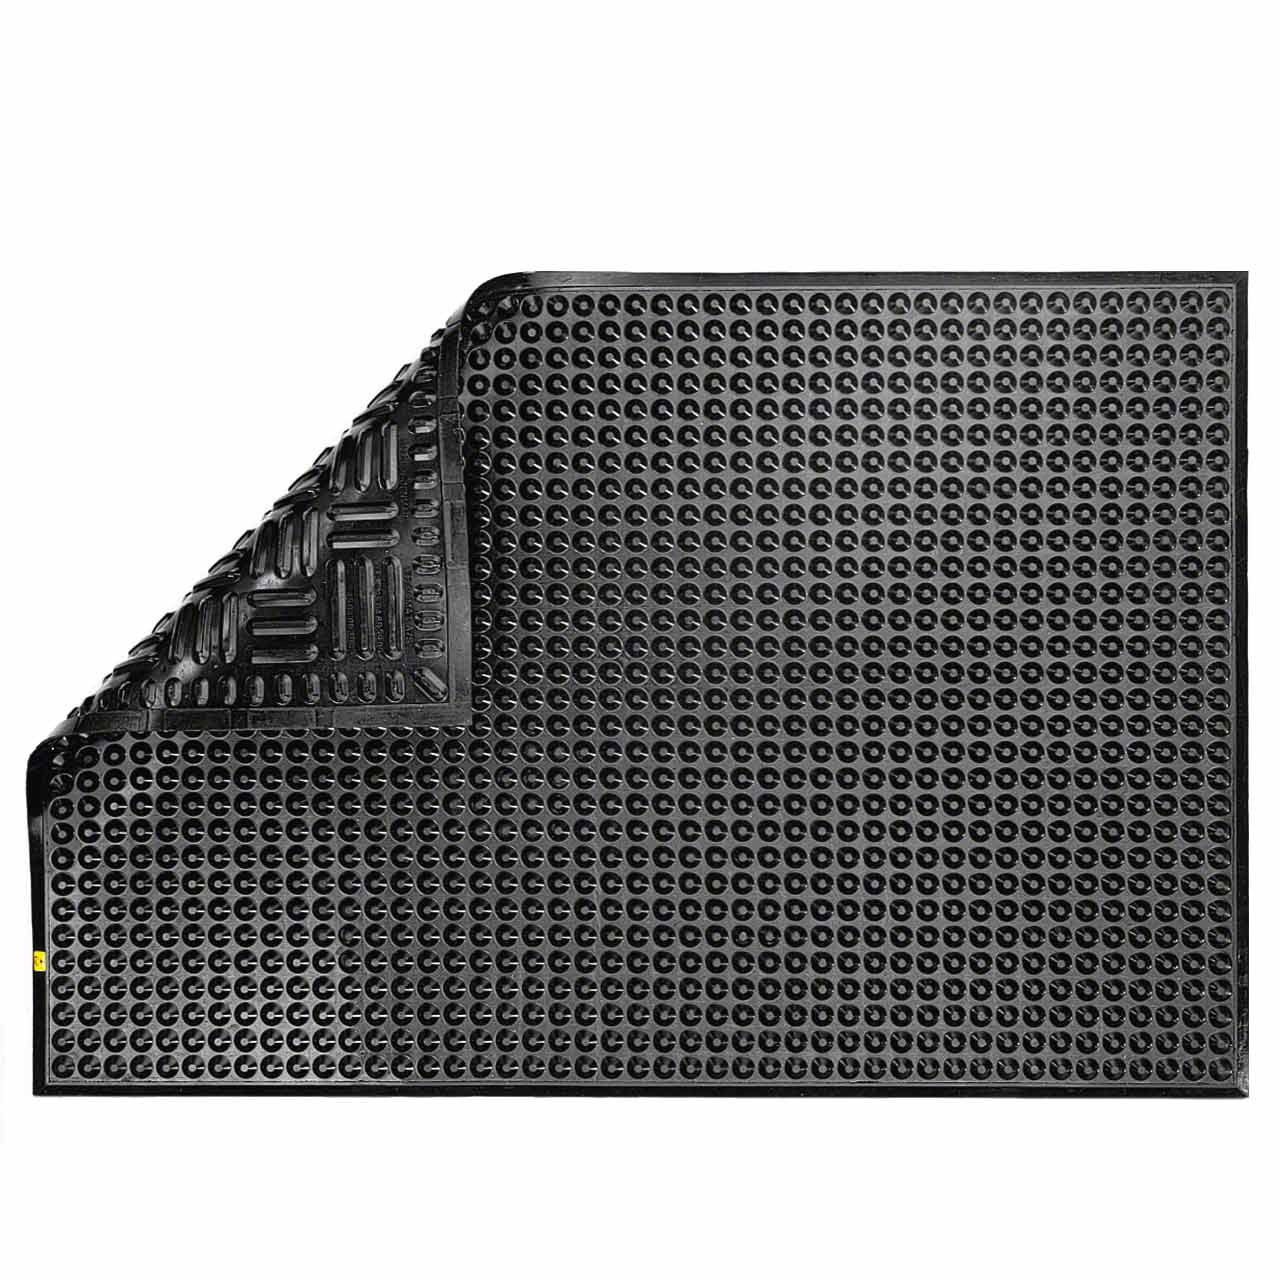 The Nitril ESD/Conductive mat protections sensitive electrical products or equipment